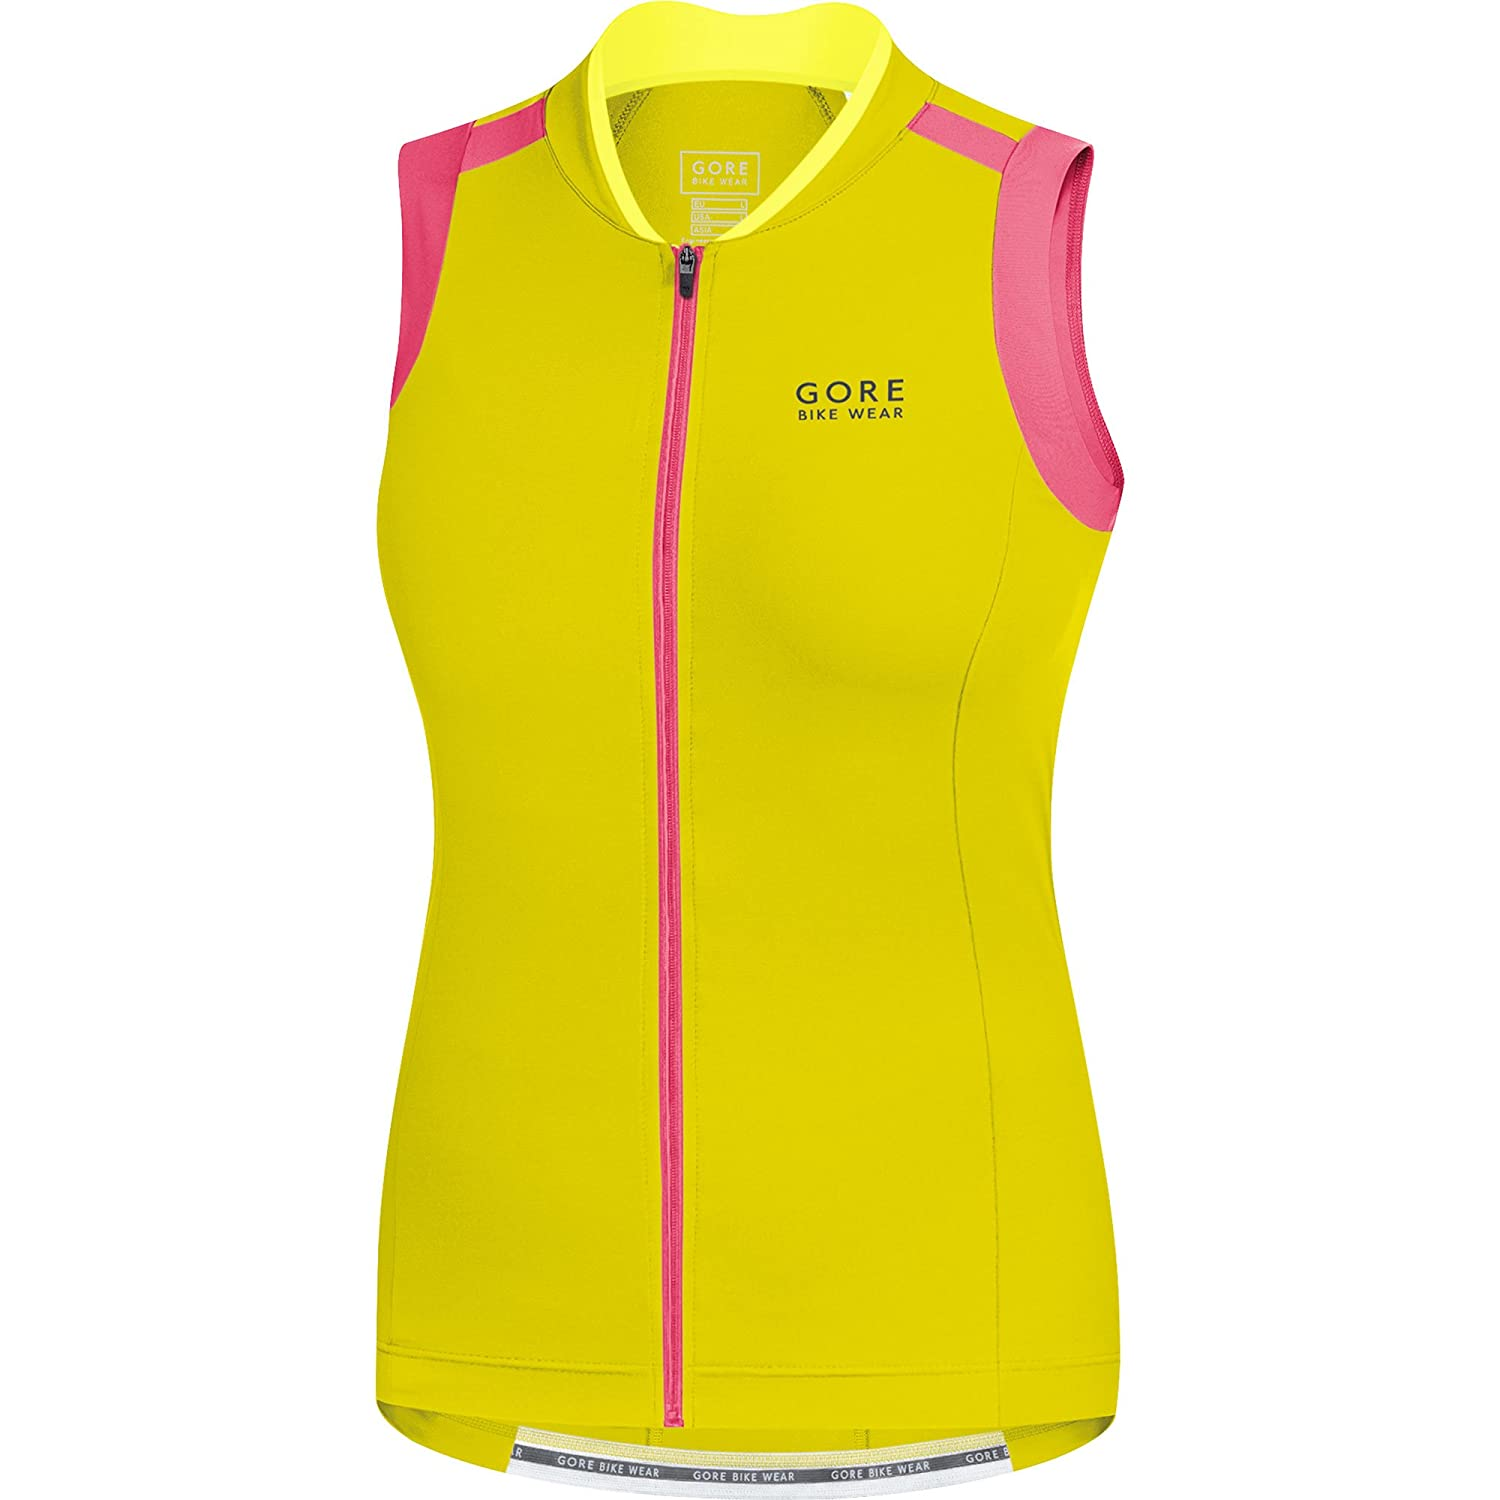 74b70a57e GORE BIKE WEAR Women s ILPOWE POWER LADY 3.0 Singlet